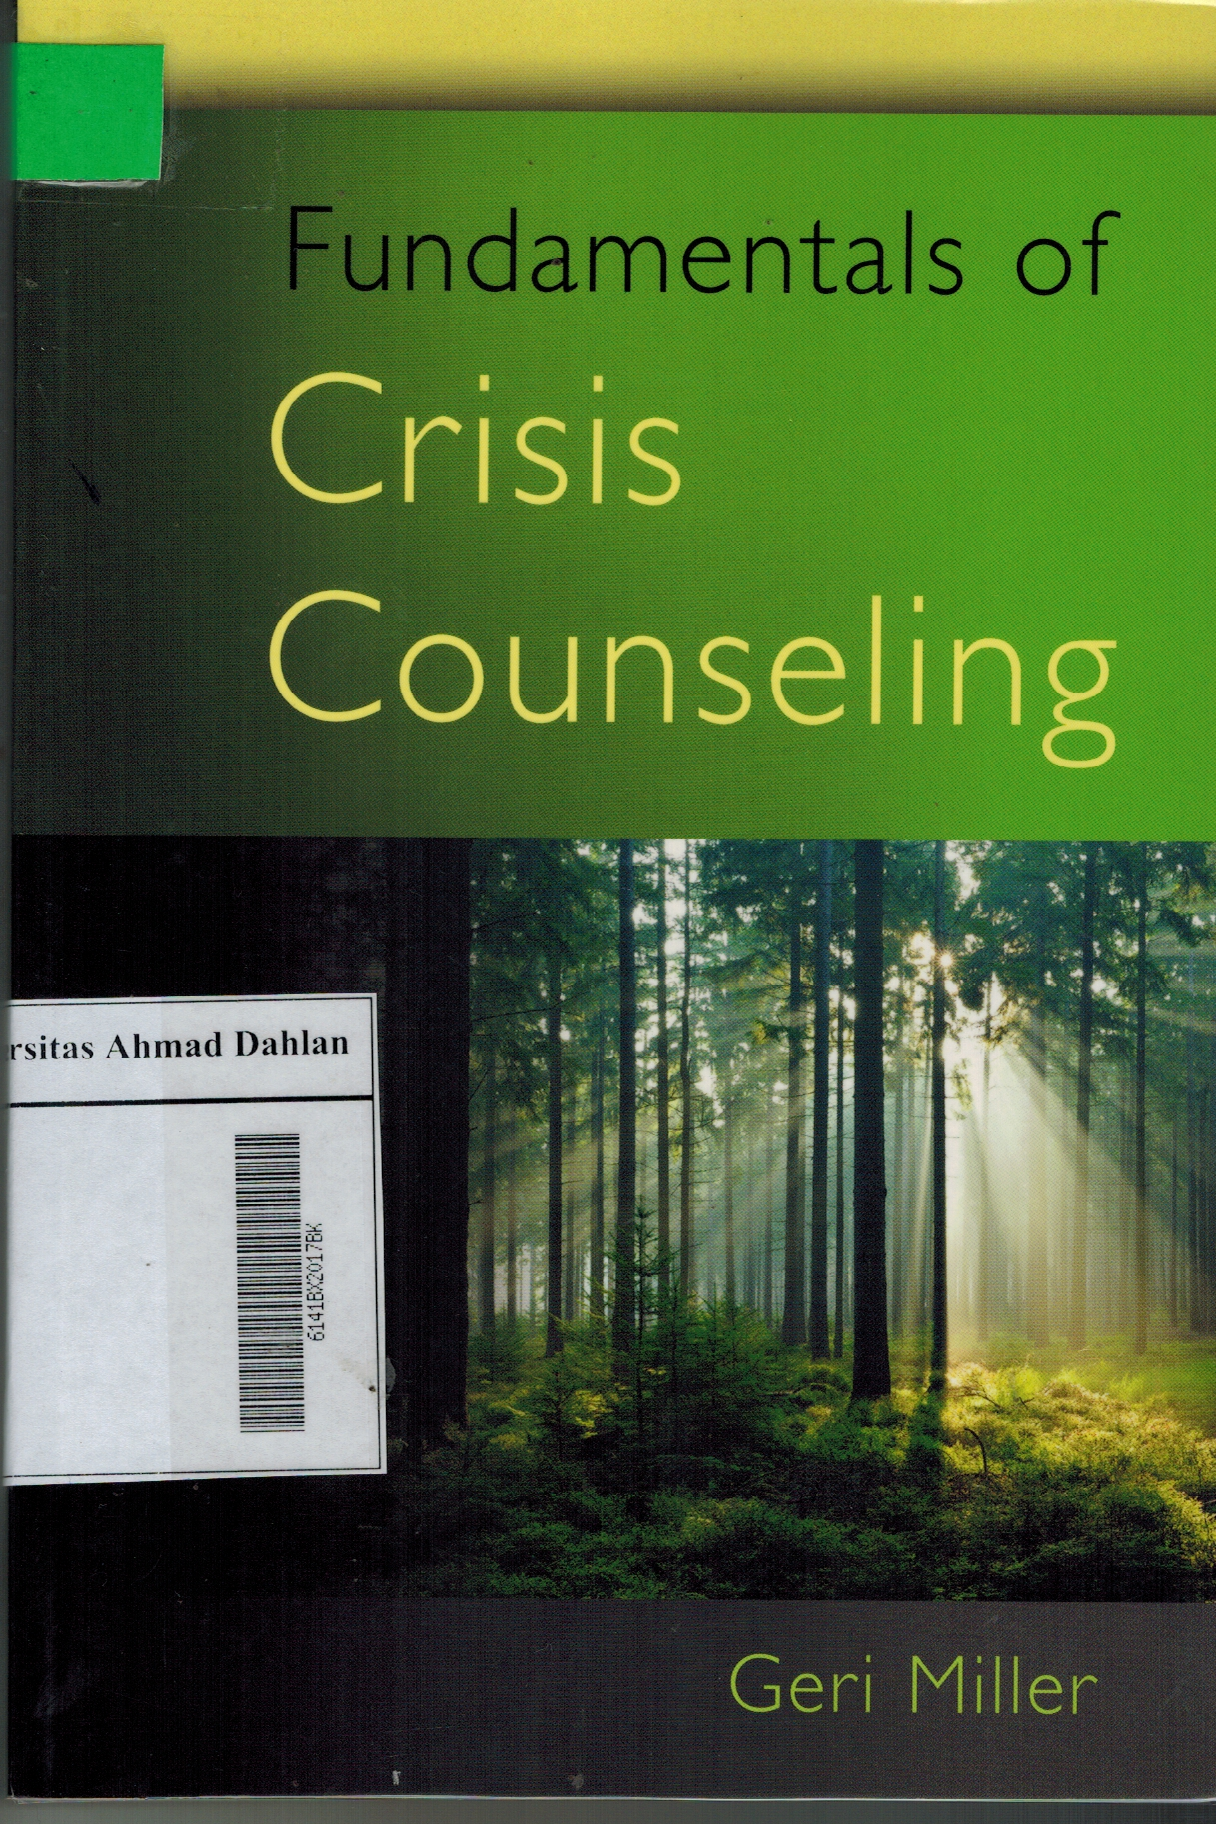 scott floyd crisis counseling Crisis counseling - a guide for pastors and professionals scott floyd publisher kregel and secondary trauma that often accompany crisis ministry and.